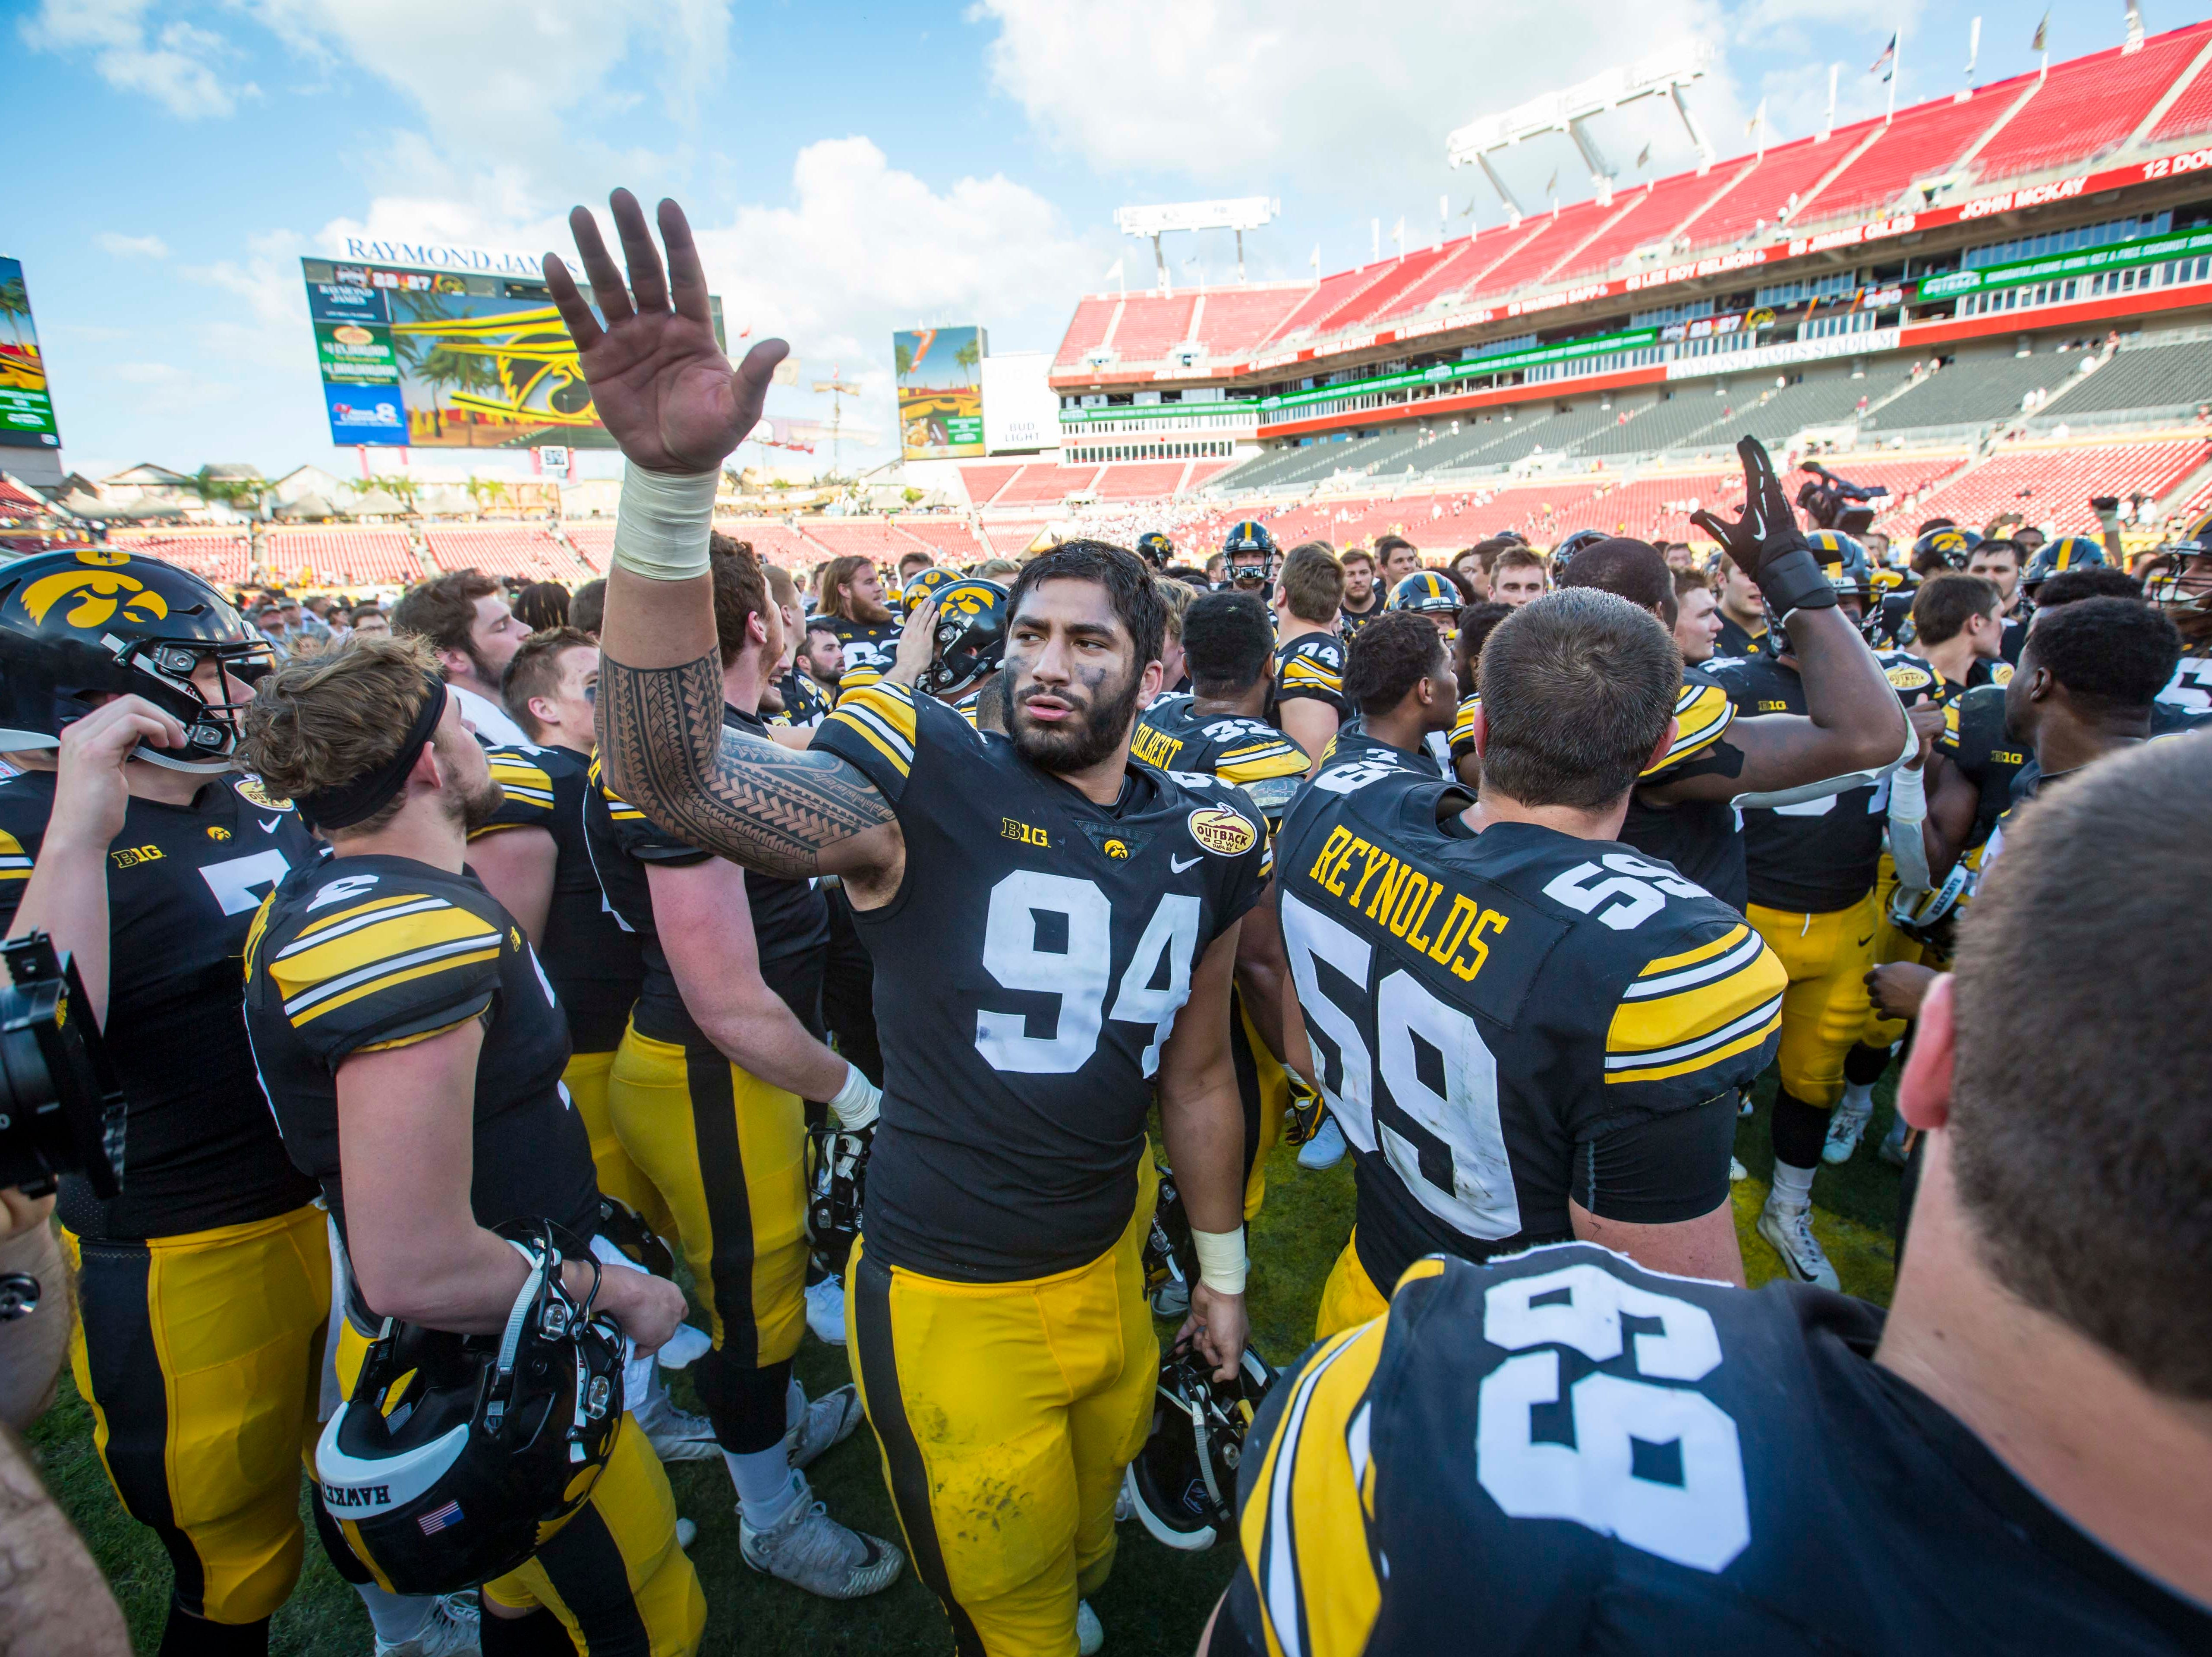 Iowa defensive end A.J. Epenesa celebrates with the team after their victory over Mississippi State at the Outback Bowl Tues., Jan. 1, 2019, at Raymond James Stadium in Tampa, Florida. Iowa defeated Mississippi State 27-22.